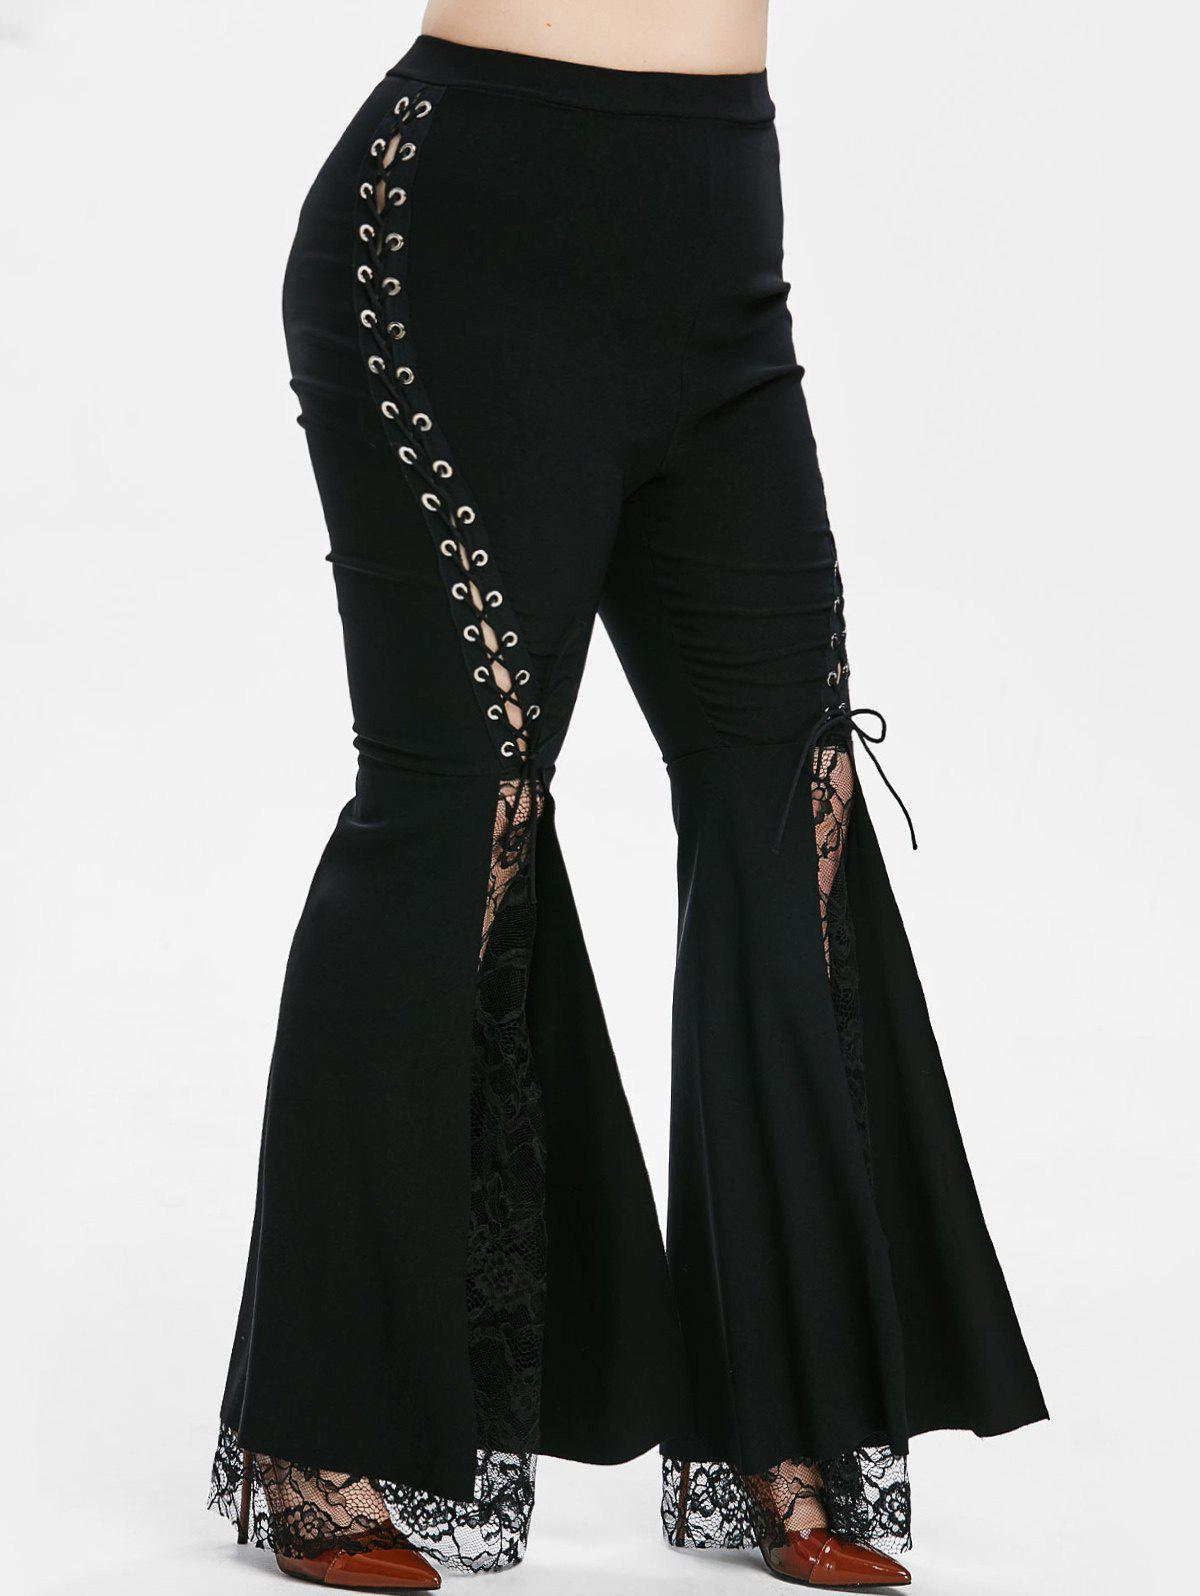 Online Lace Panel High Waisted Lace Up Plus Size Flare Pants